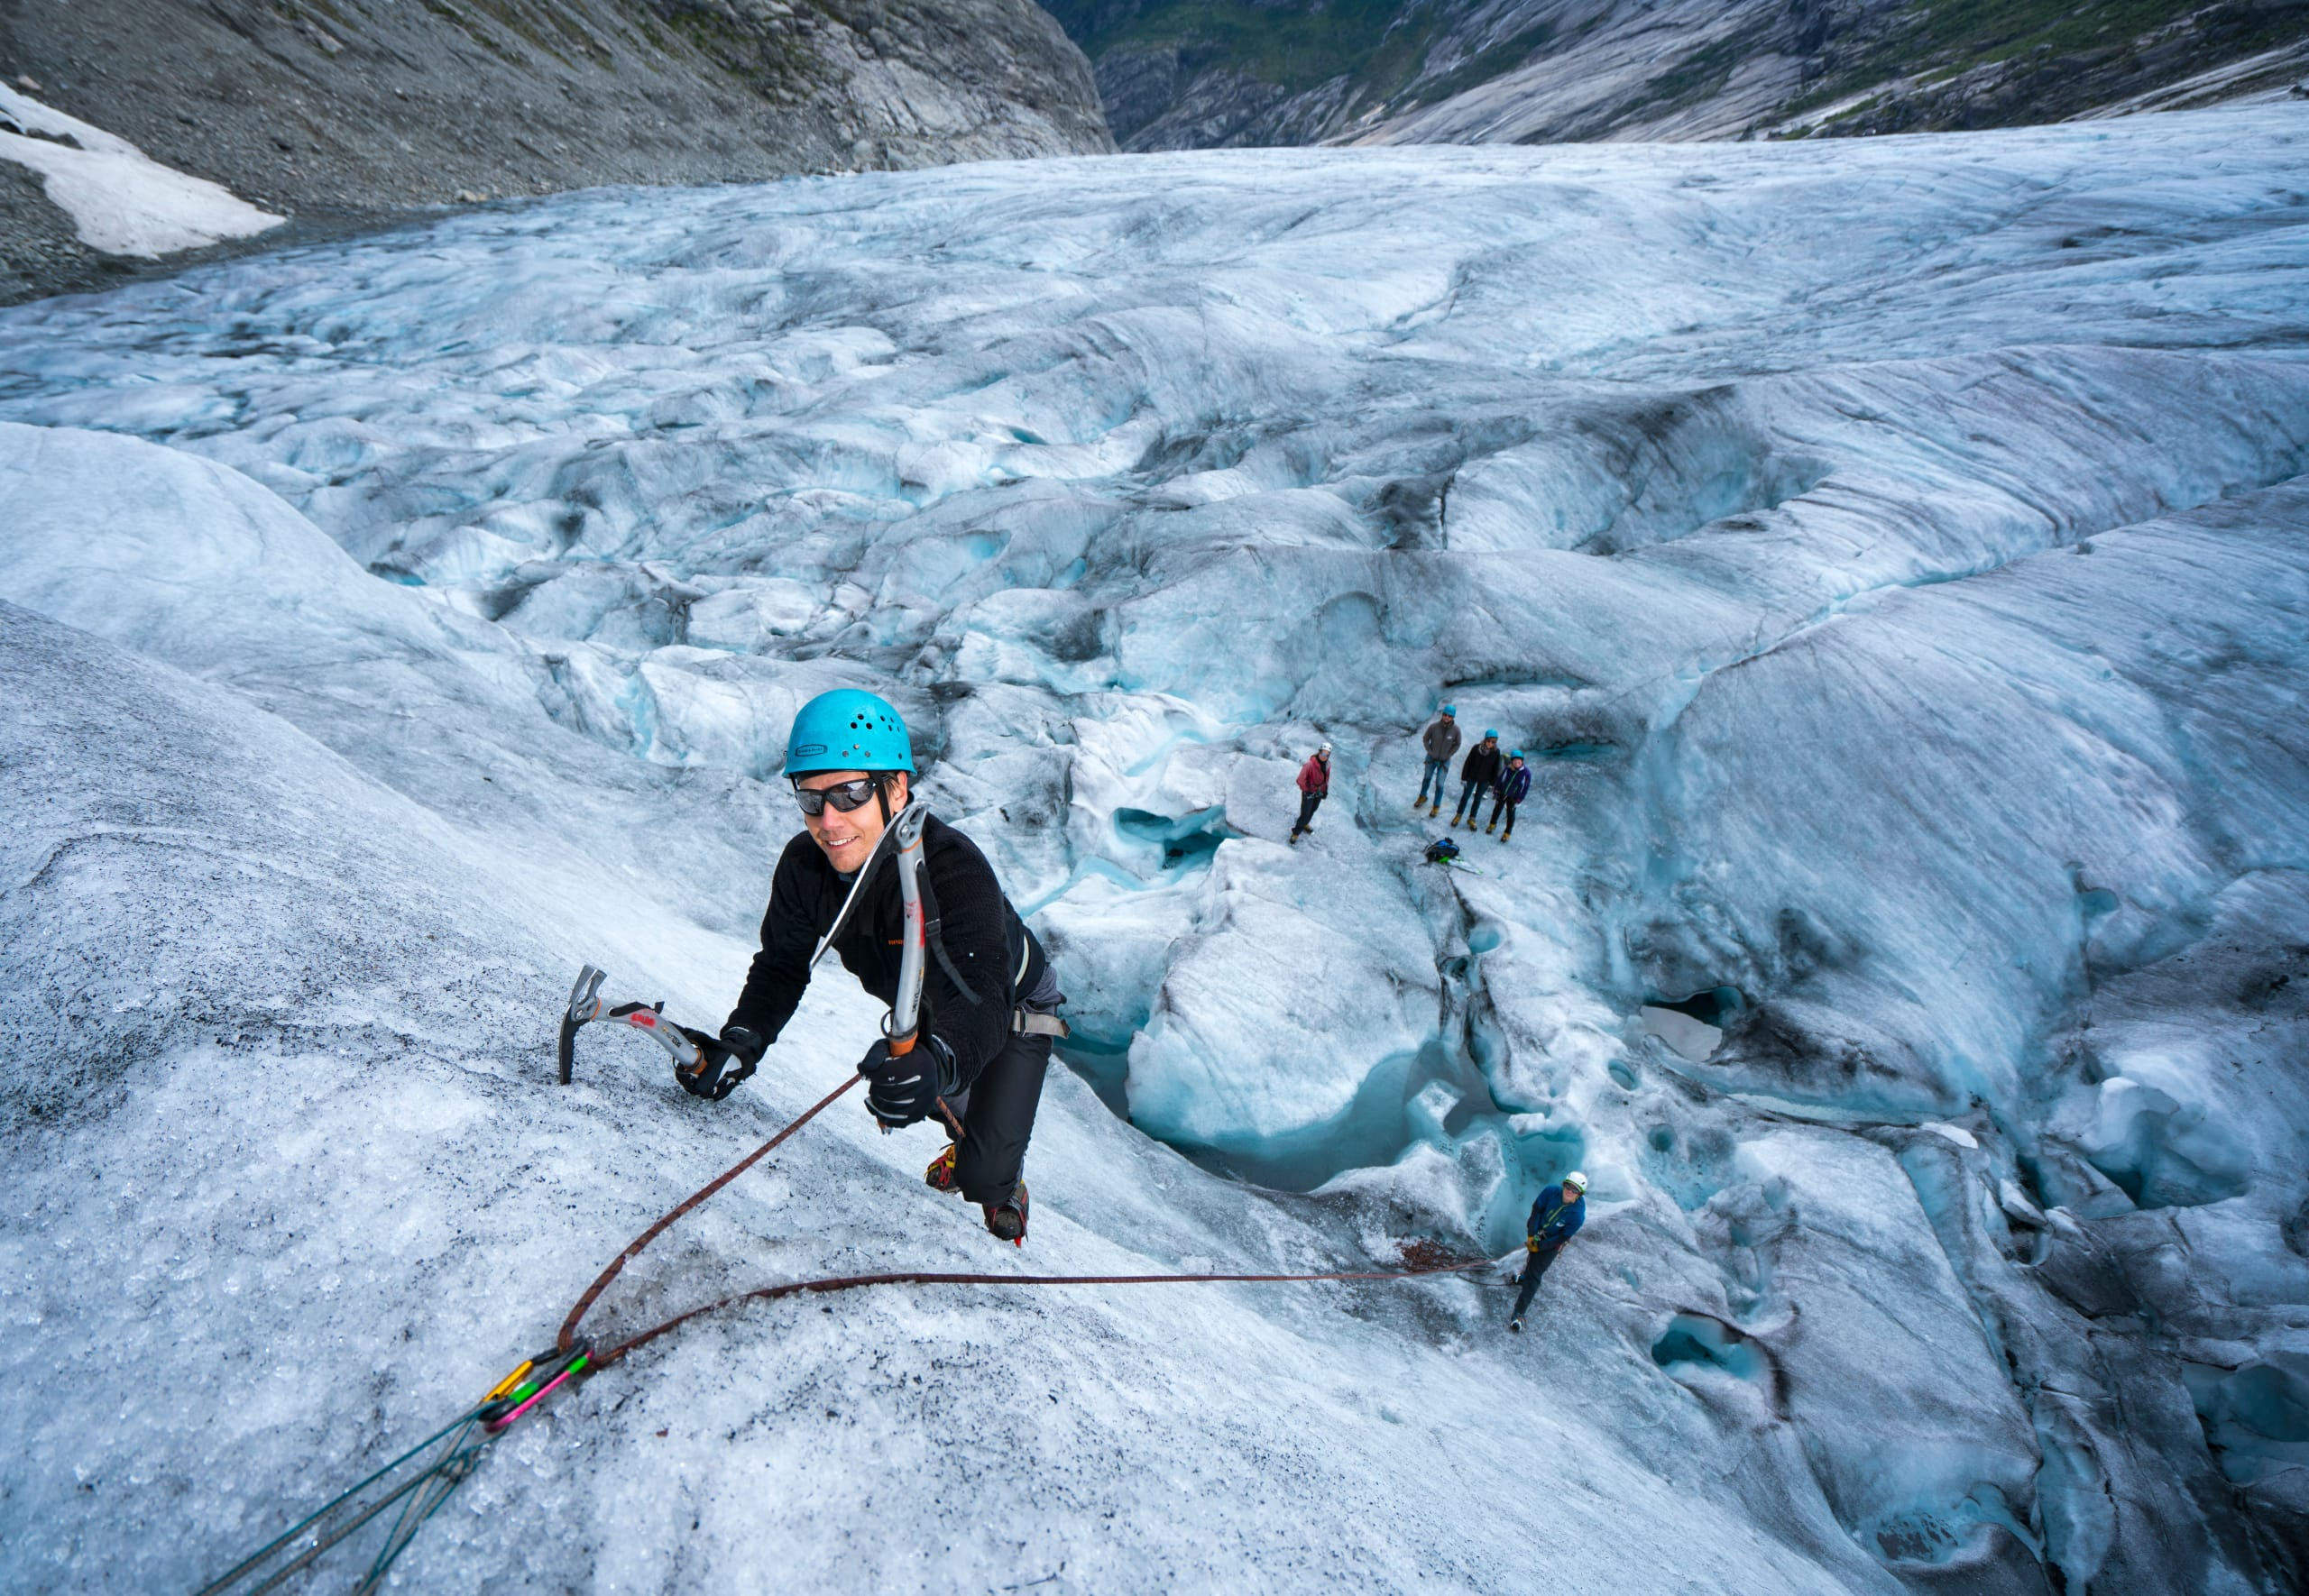 Blue ice hike and top rope climbing